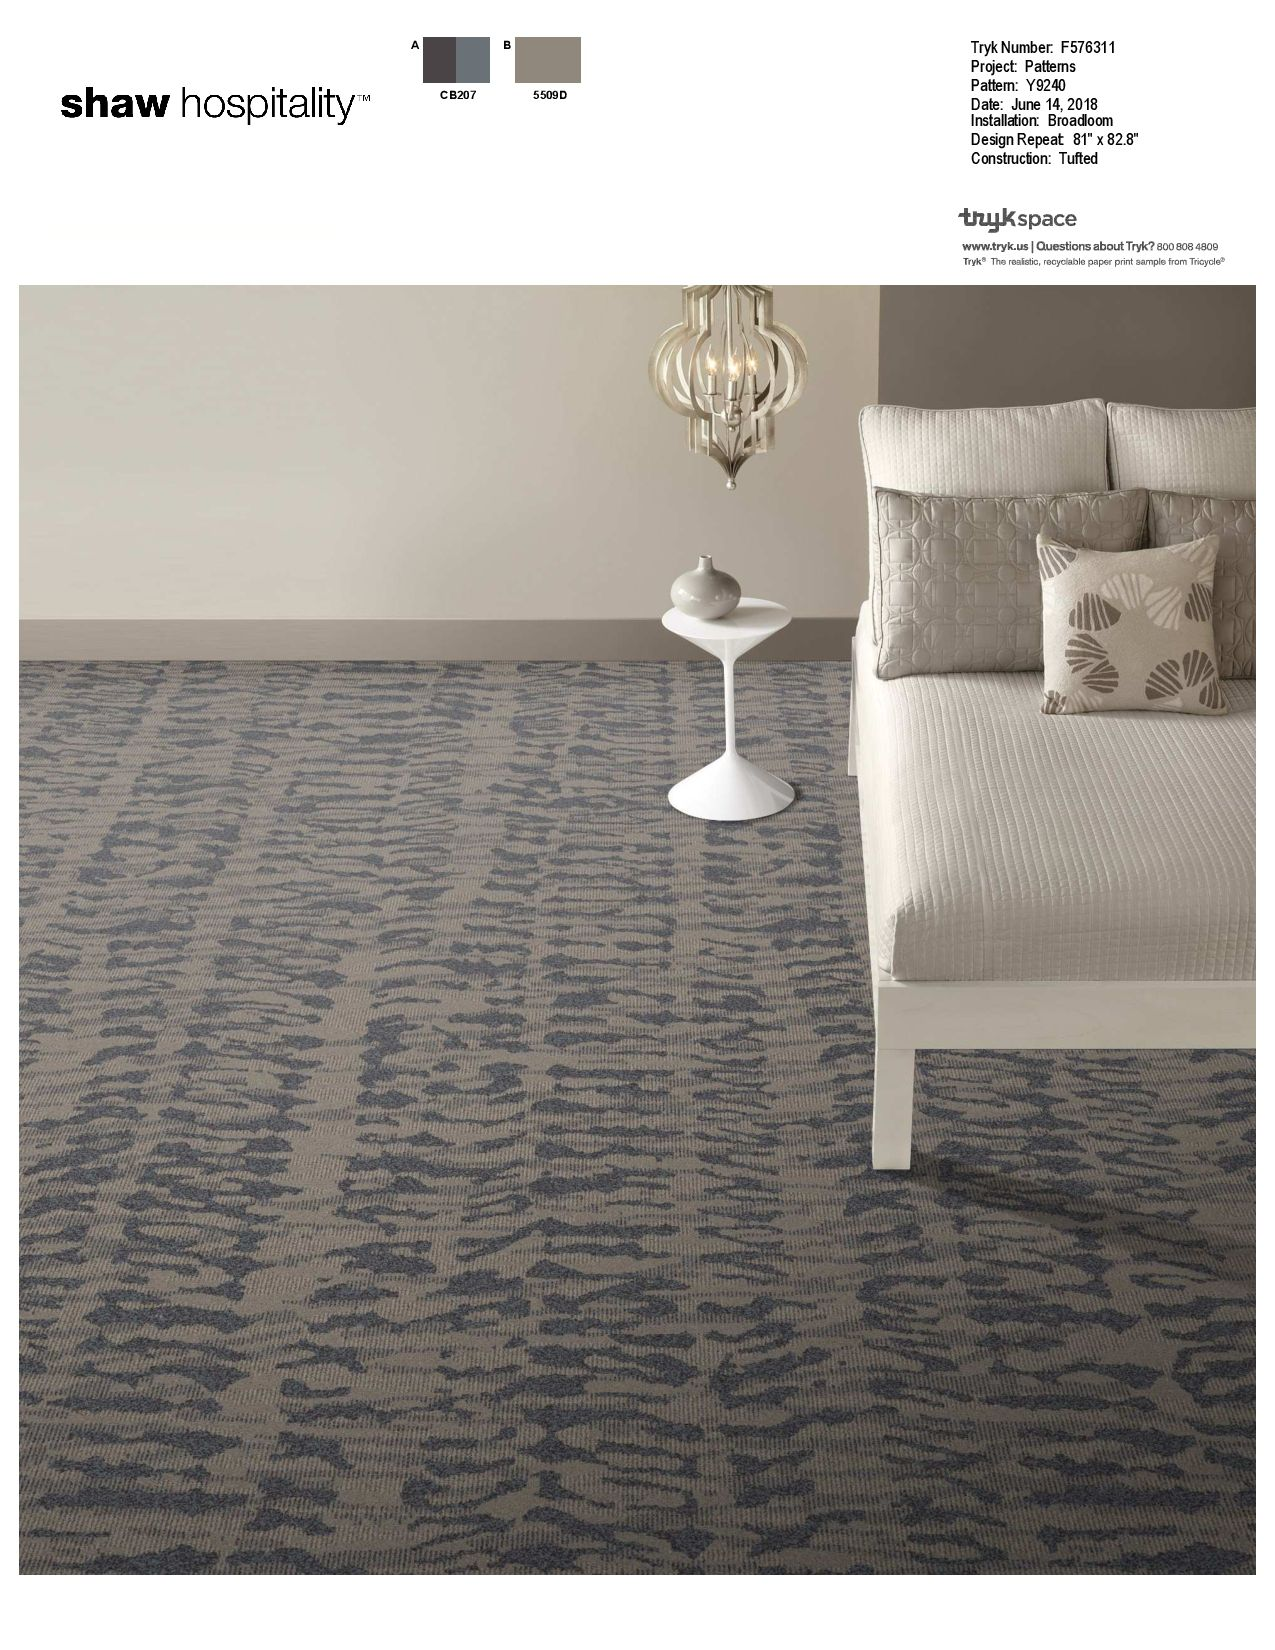 Pin By Andrew Miller On Shaw Hospitality Guestroom Carpet Home Decor Contemporary Rug Decor